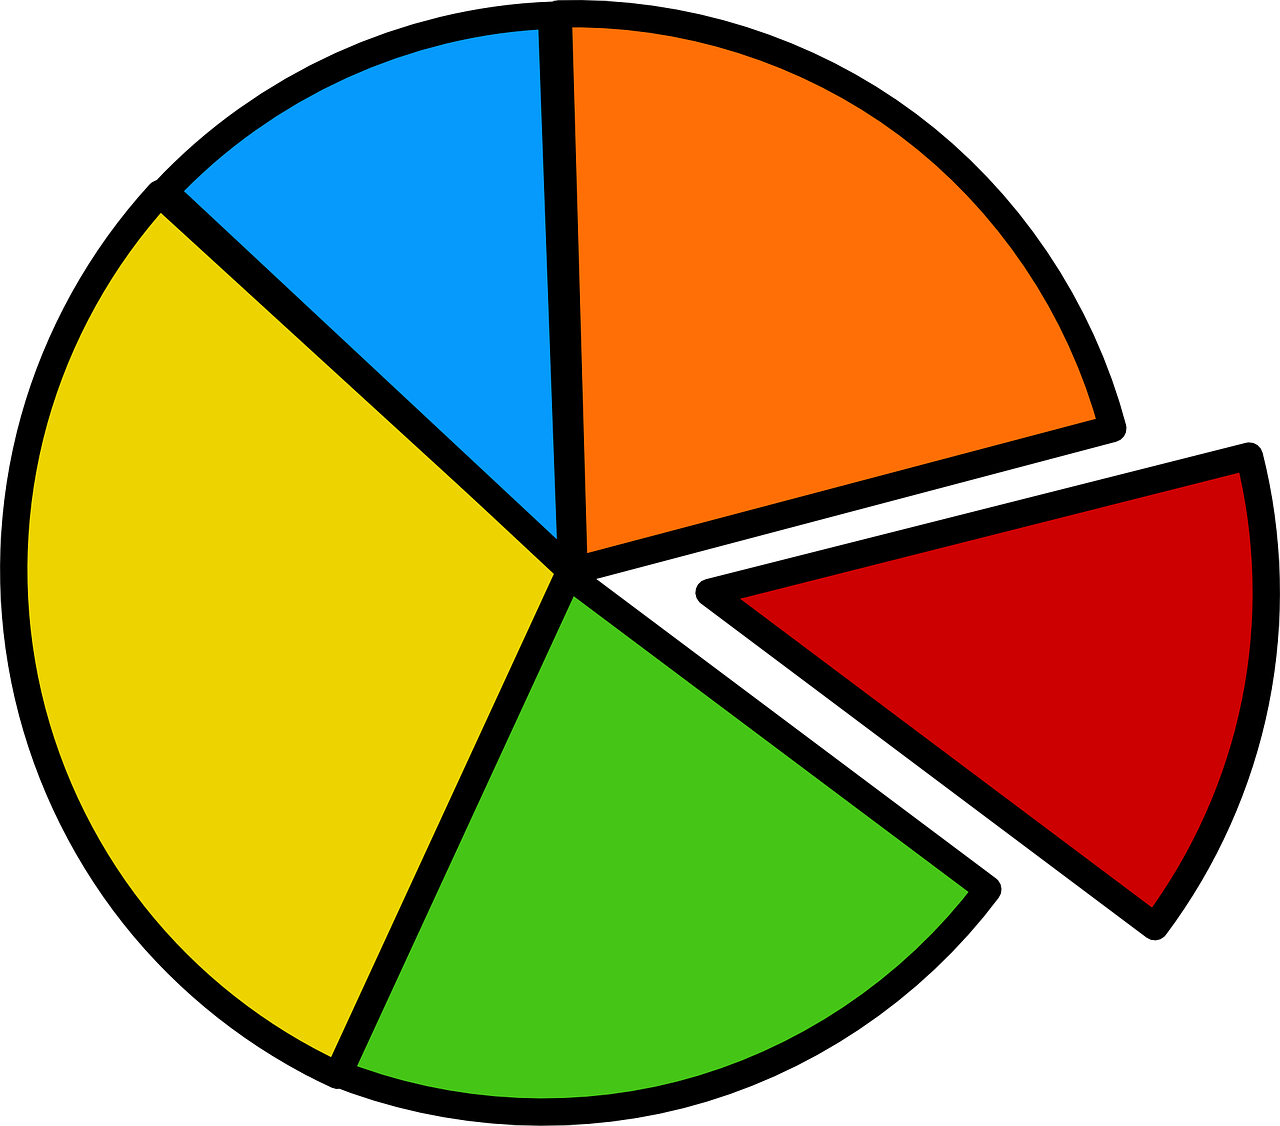 Data clipart finance chart. Other methods for collection